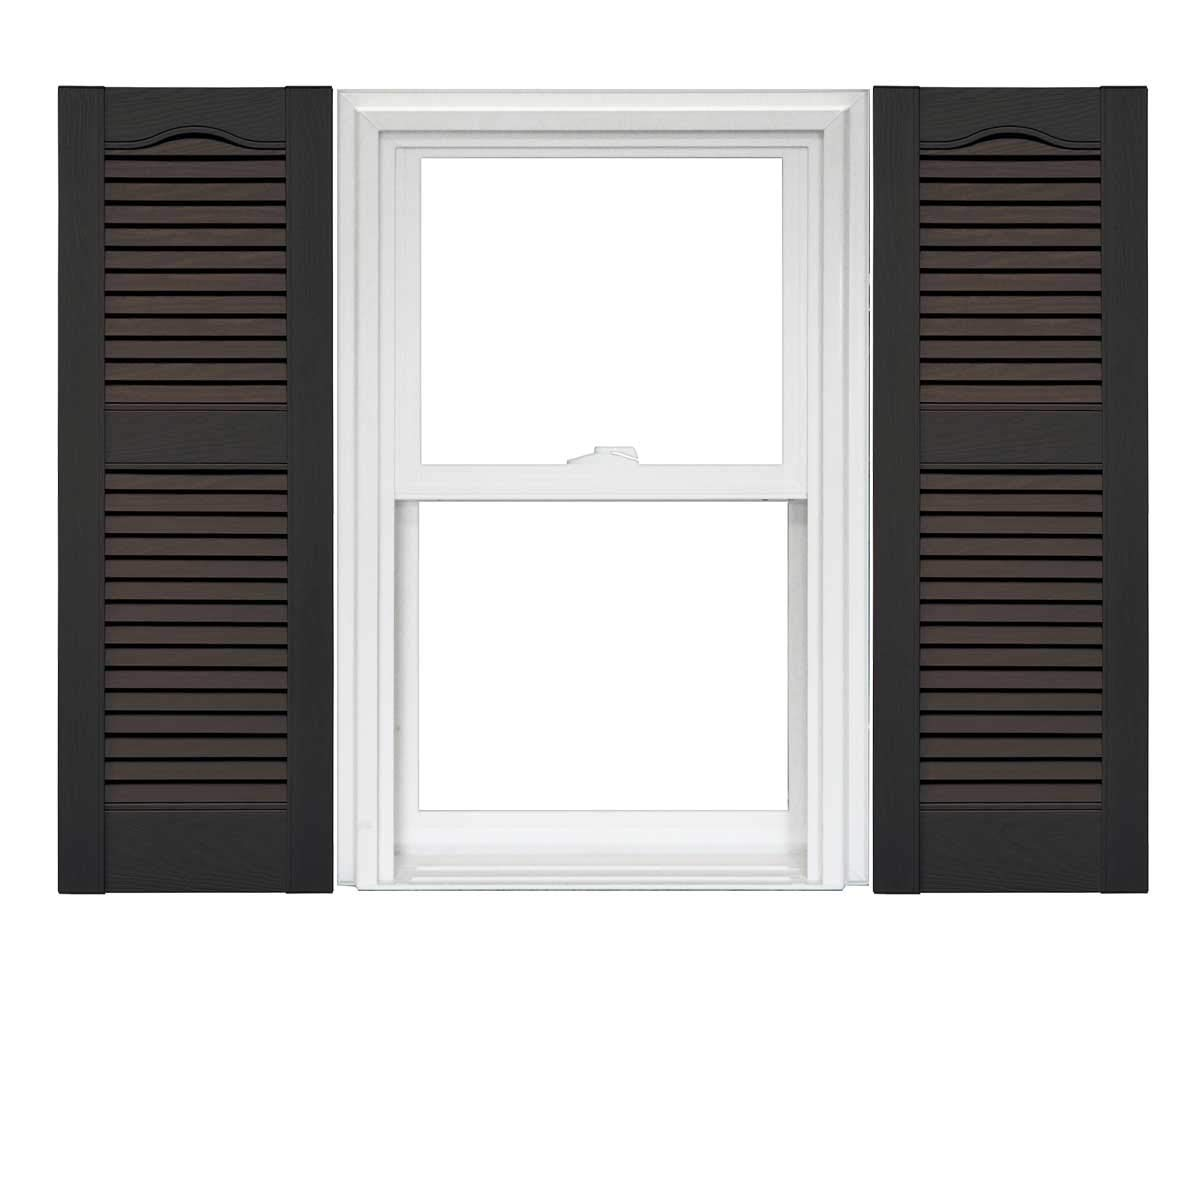 Mid America Cathedral Open Louver Vinyl Standard Shutter 1 Pair 12 x 60 010 Musket Brown